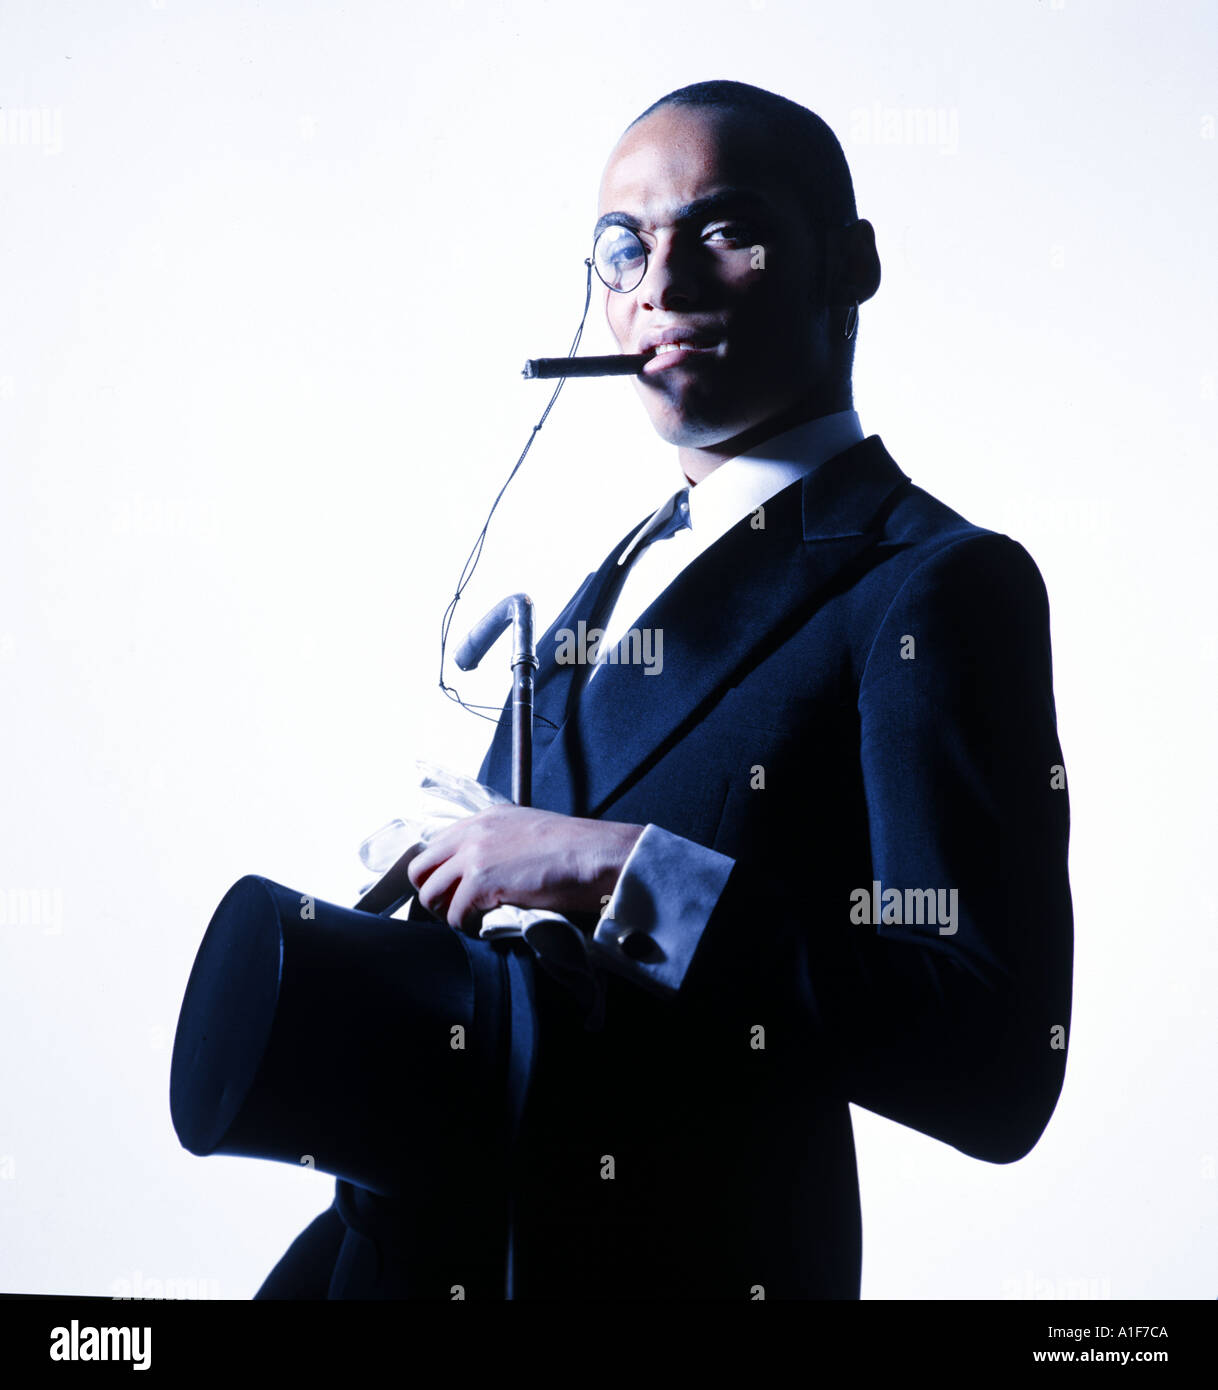 Young black man with monocle, cigar and tailcoat outfit looking very self-confident in to the camera - Stock Image